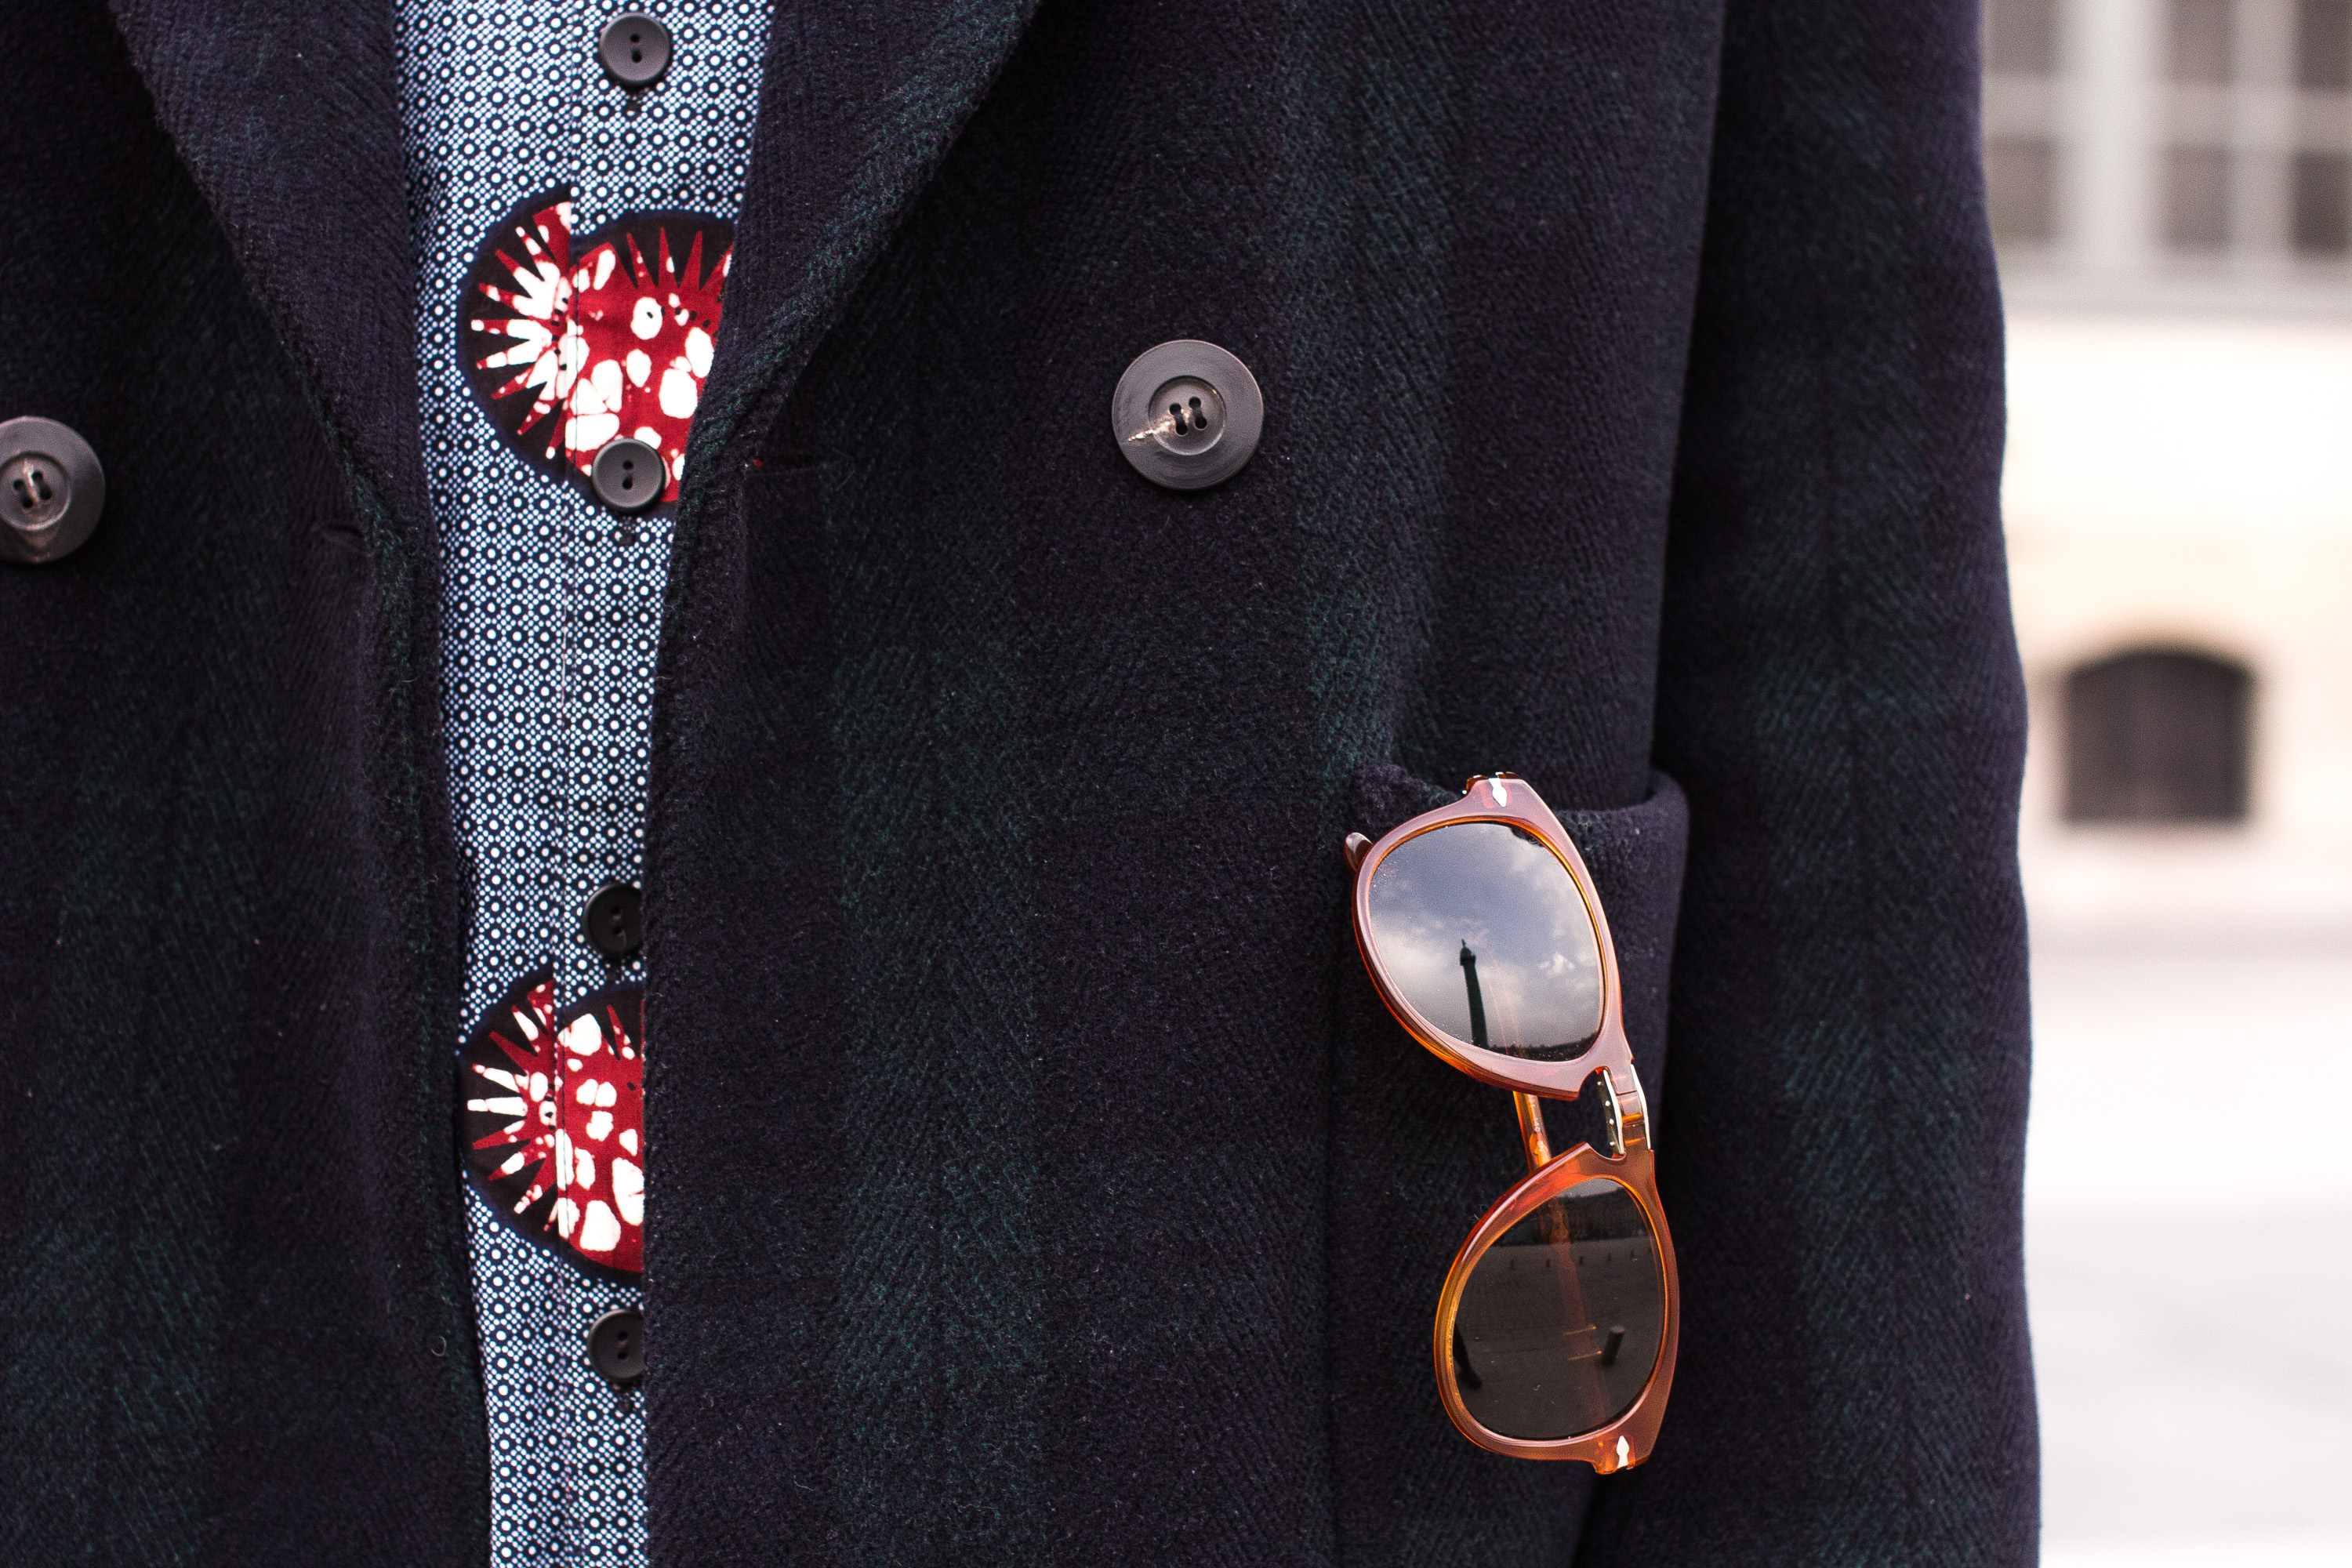 Patrons Woollen Coat details with Persol sunglasses